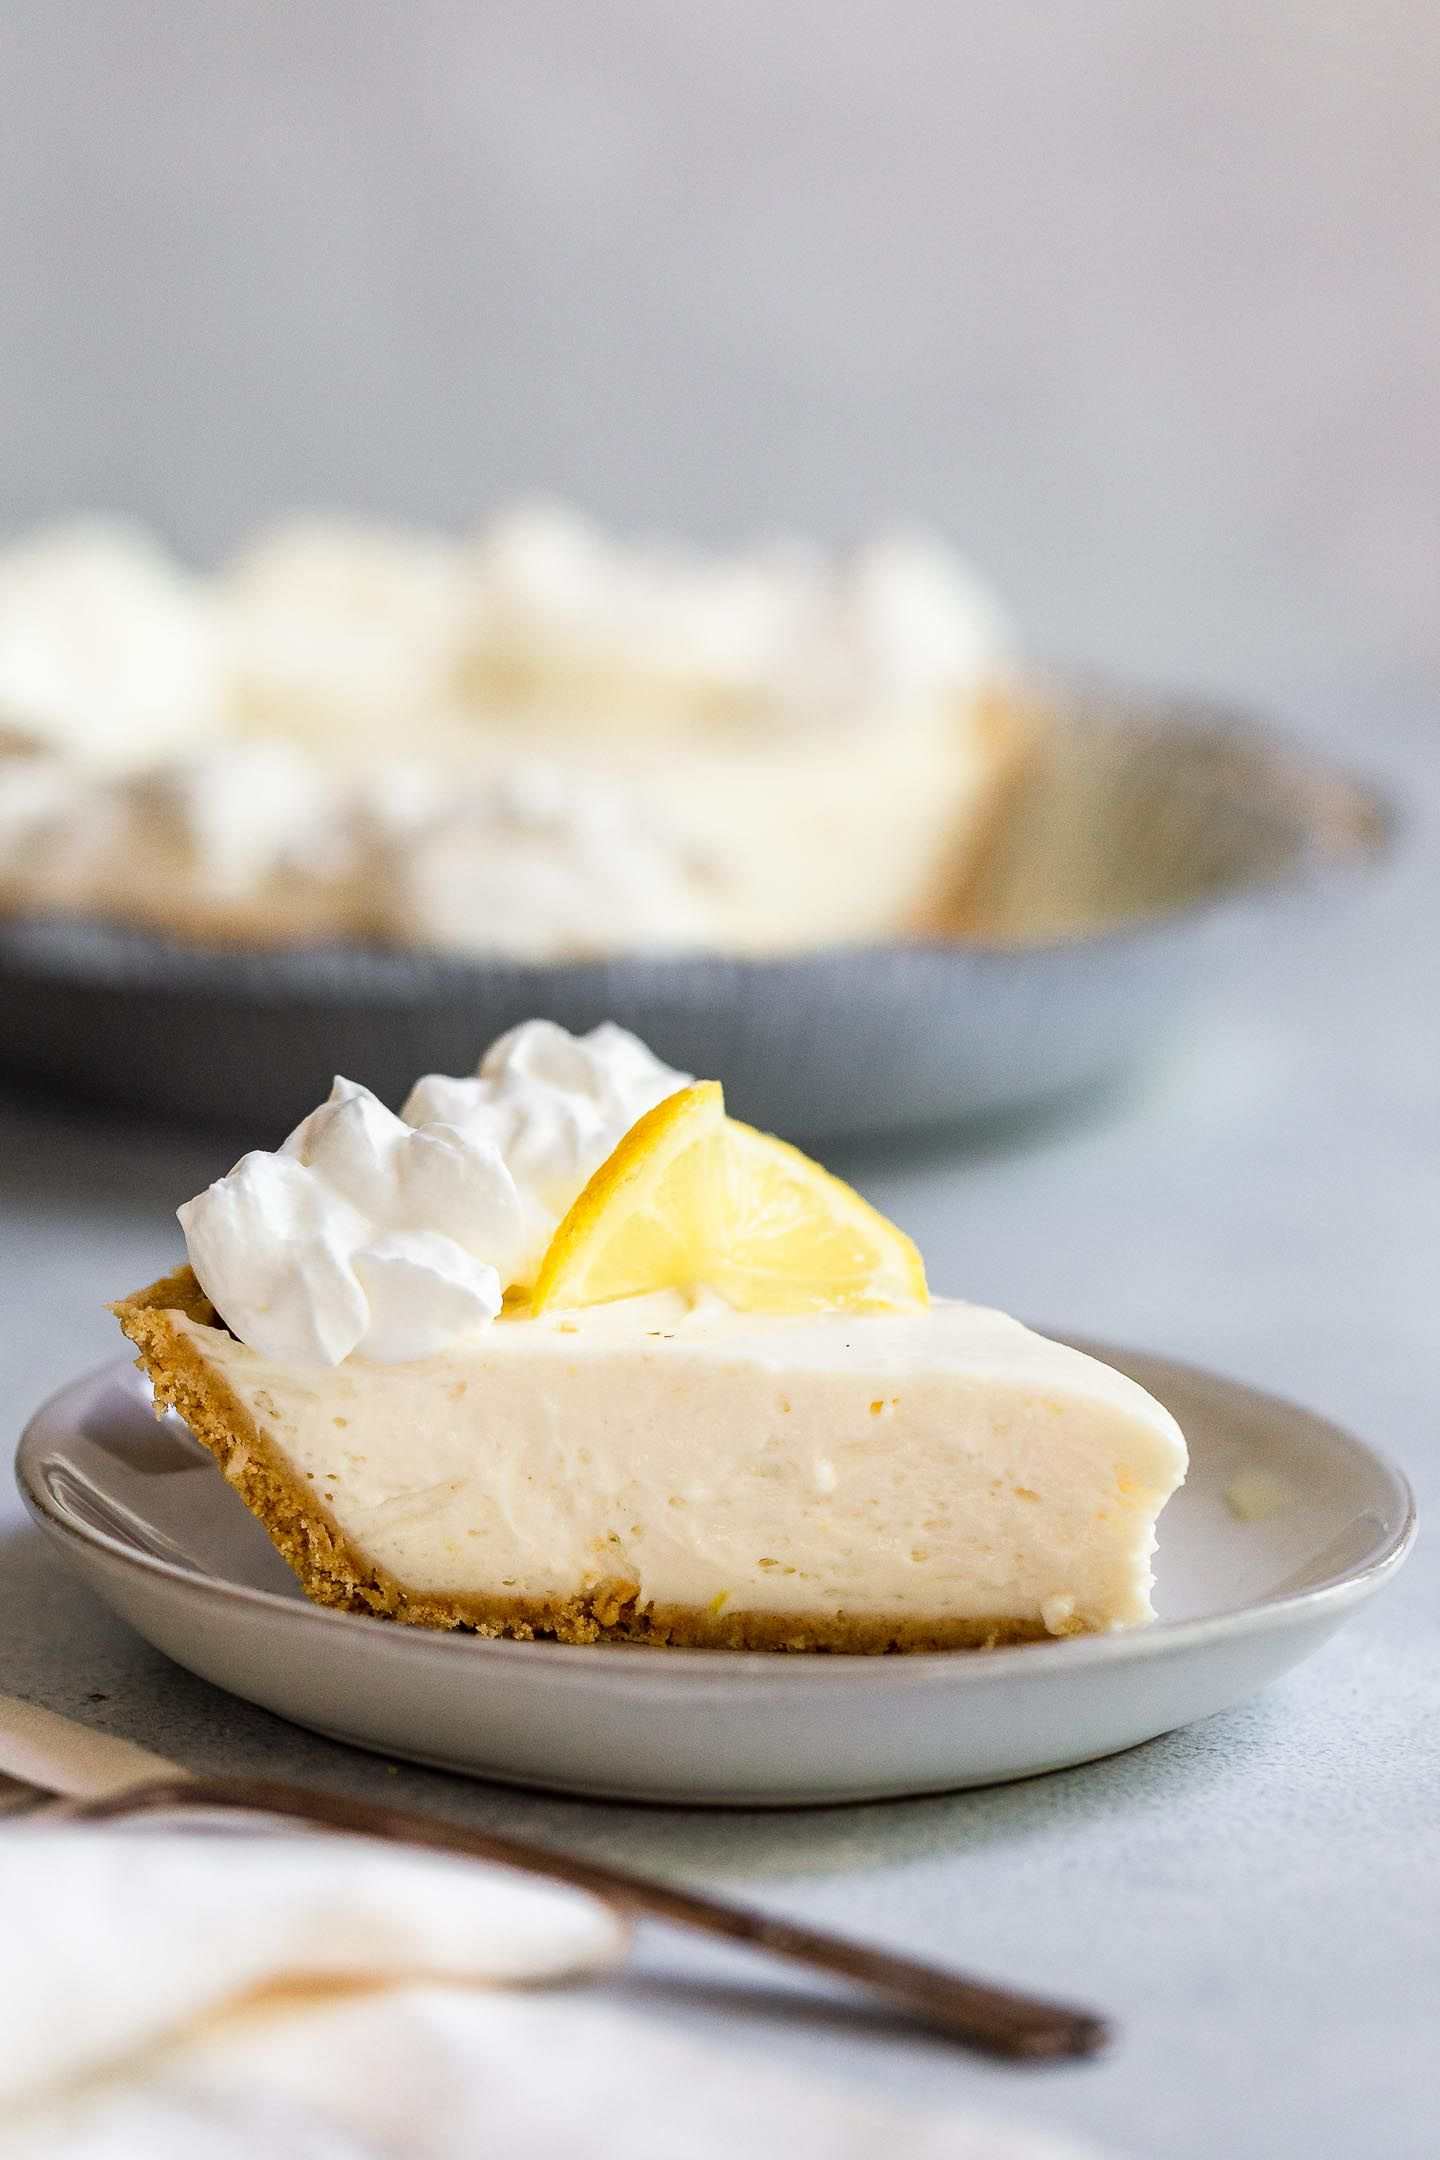 No Bake Lemon Icebox Pie Recipe 3 Ingredients Amy In The Kitchen Recipe Sweetened Condensed Milk Recipes Lemon Icebox Pie Icebox Pie